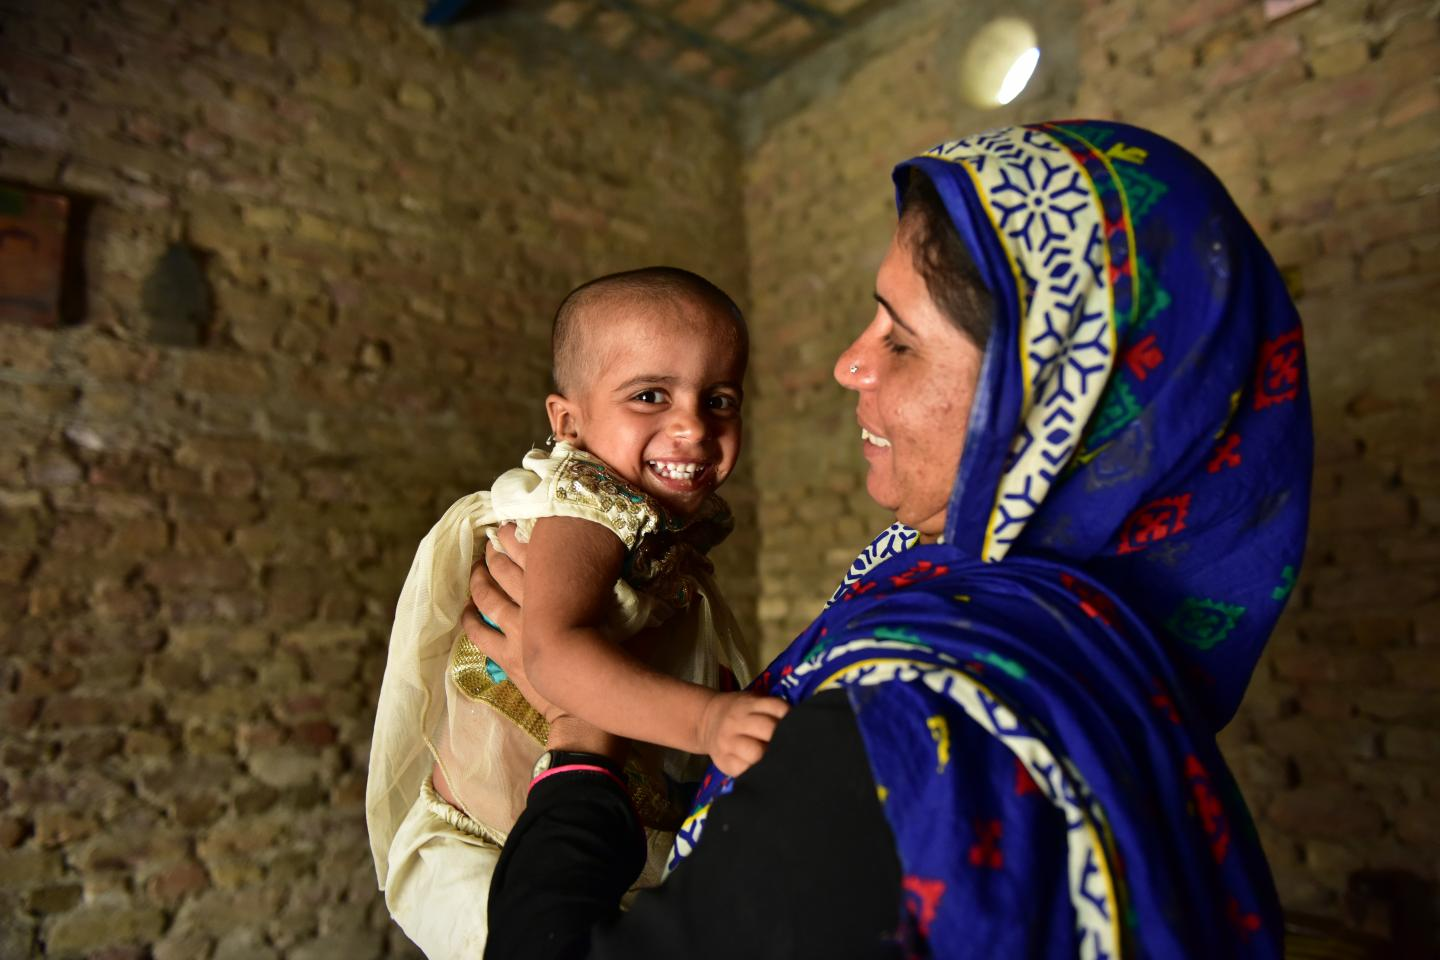 The image shows Gul Jan sharing a happy moment with her 2 year old daughter Ansa